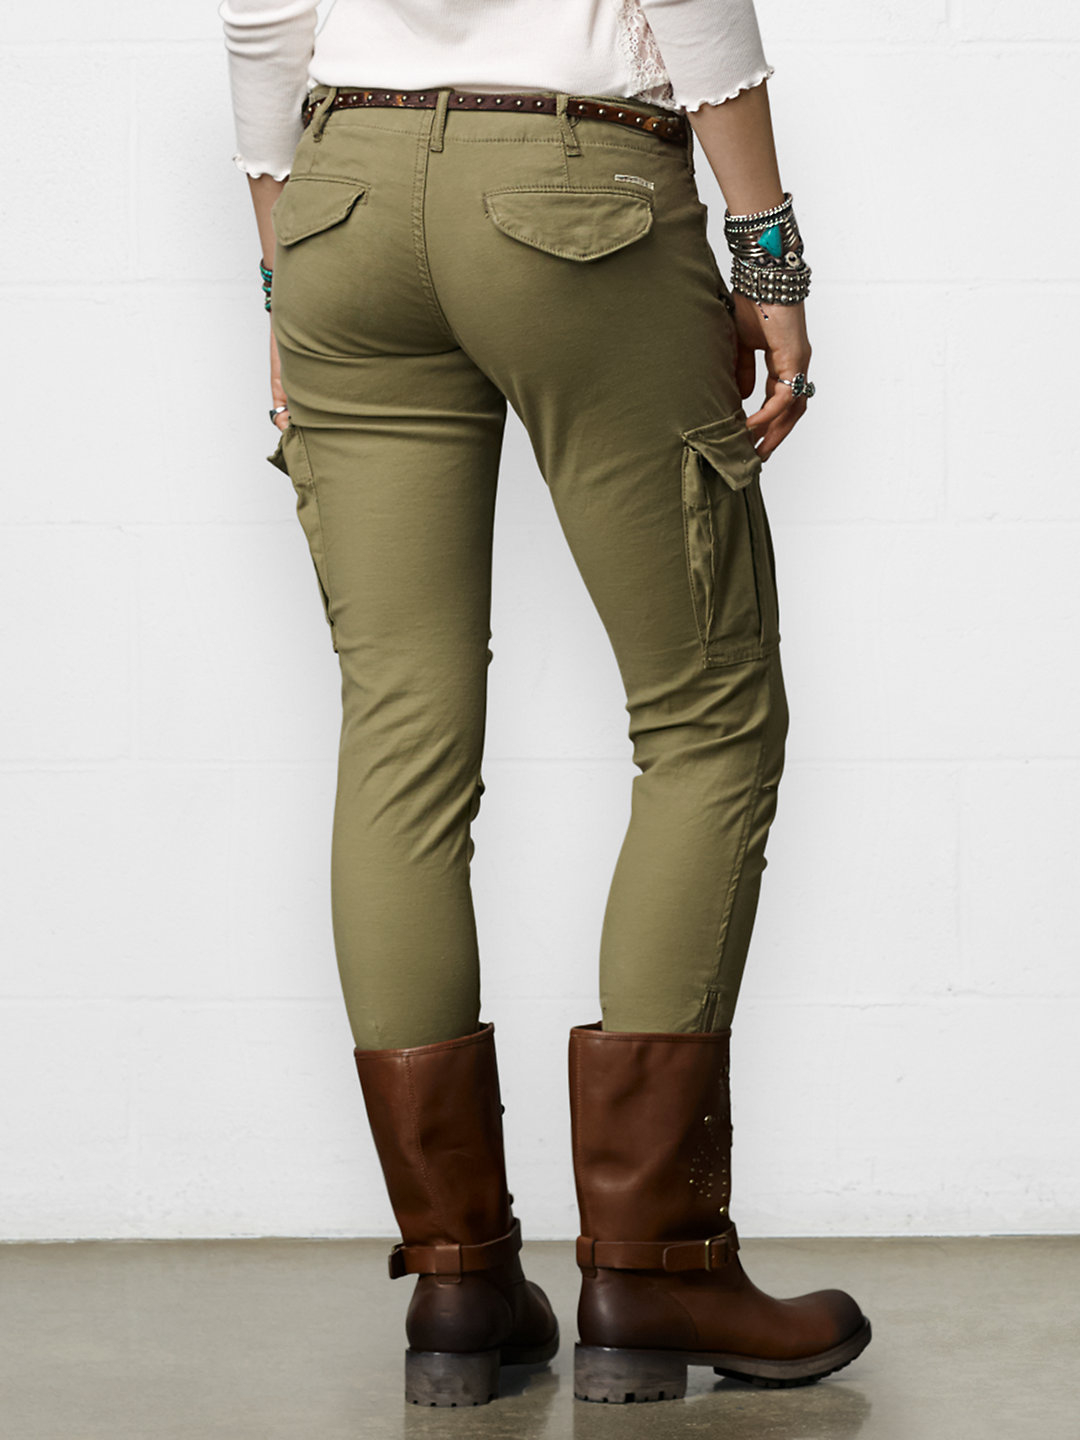 Cool  Cargo Pant Cargo Pants Outfit Women S Cargo Pants Skinny Cargo Pants